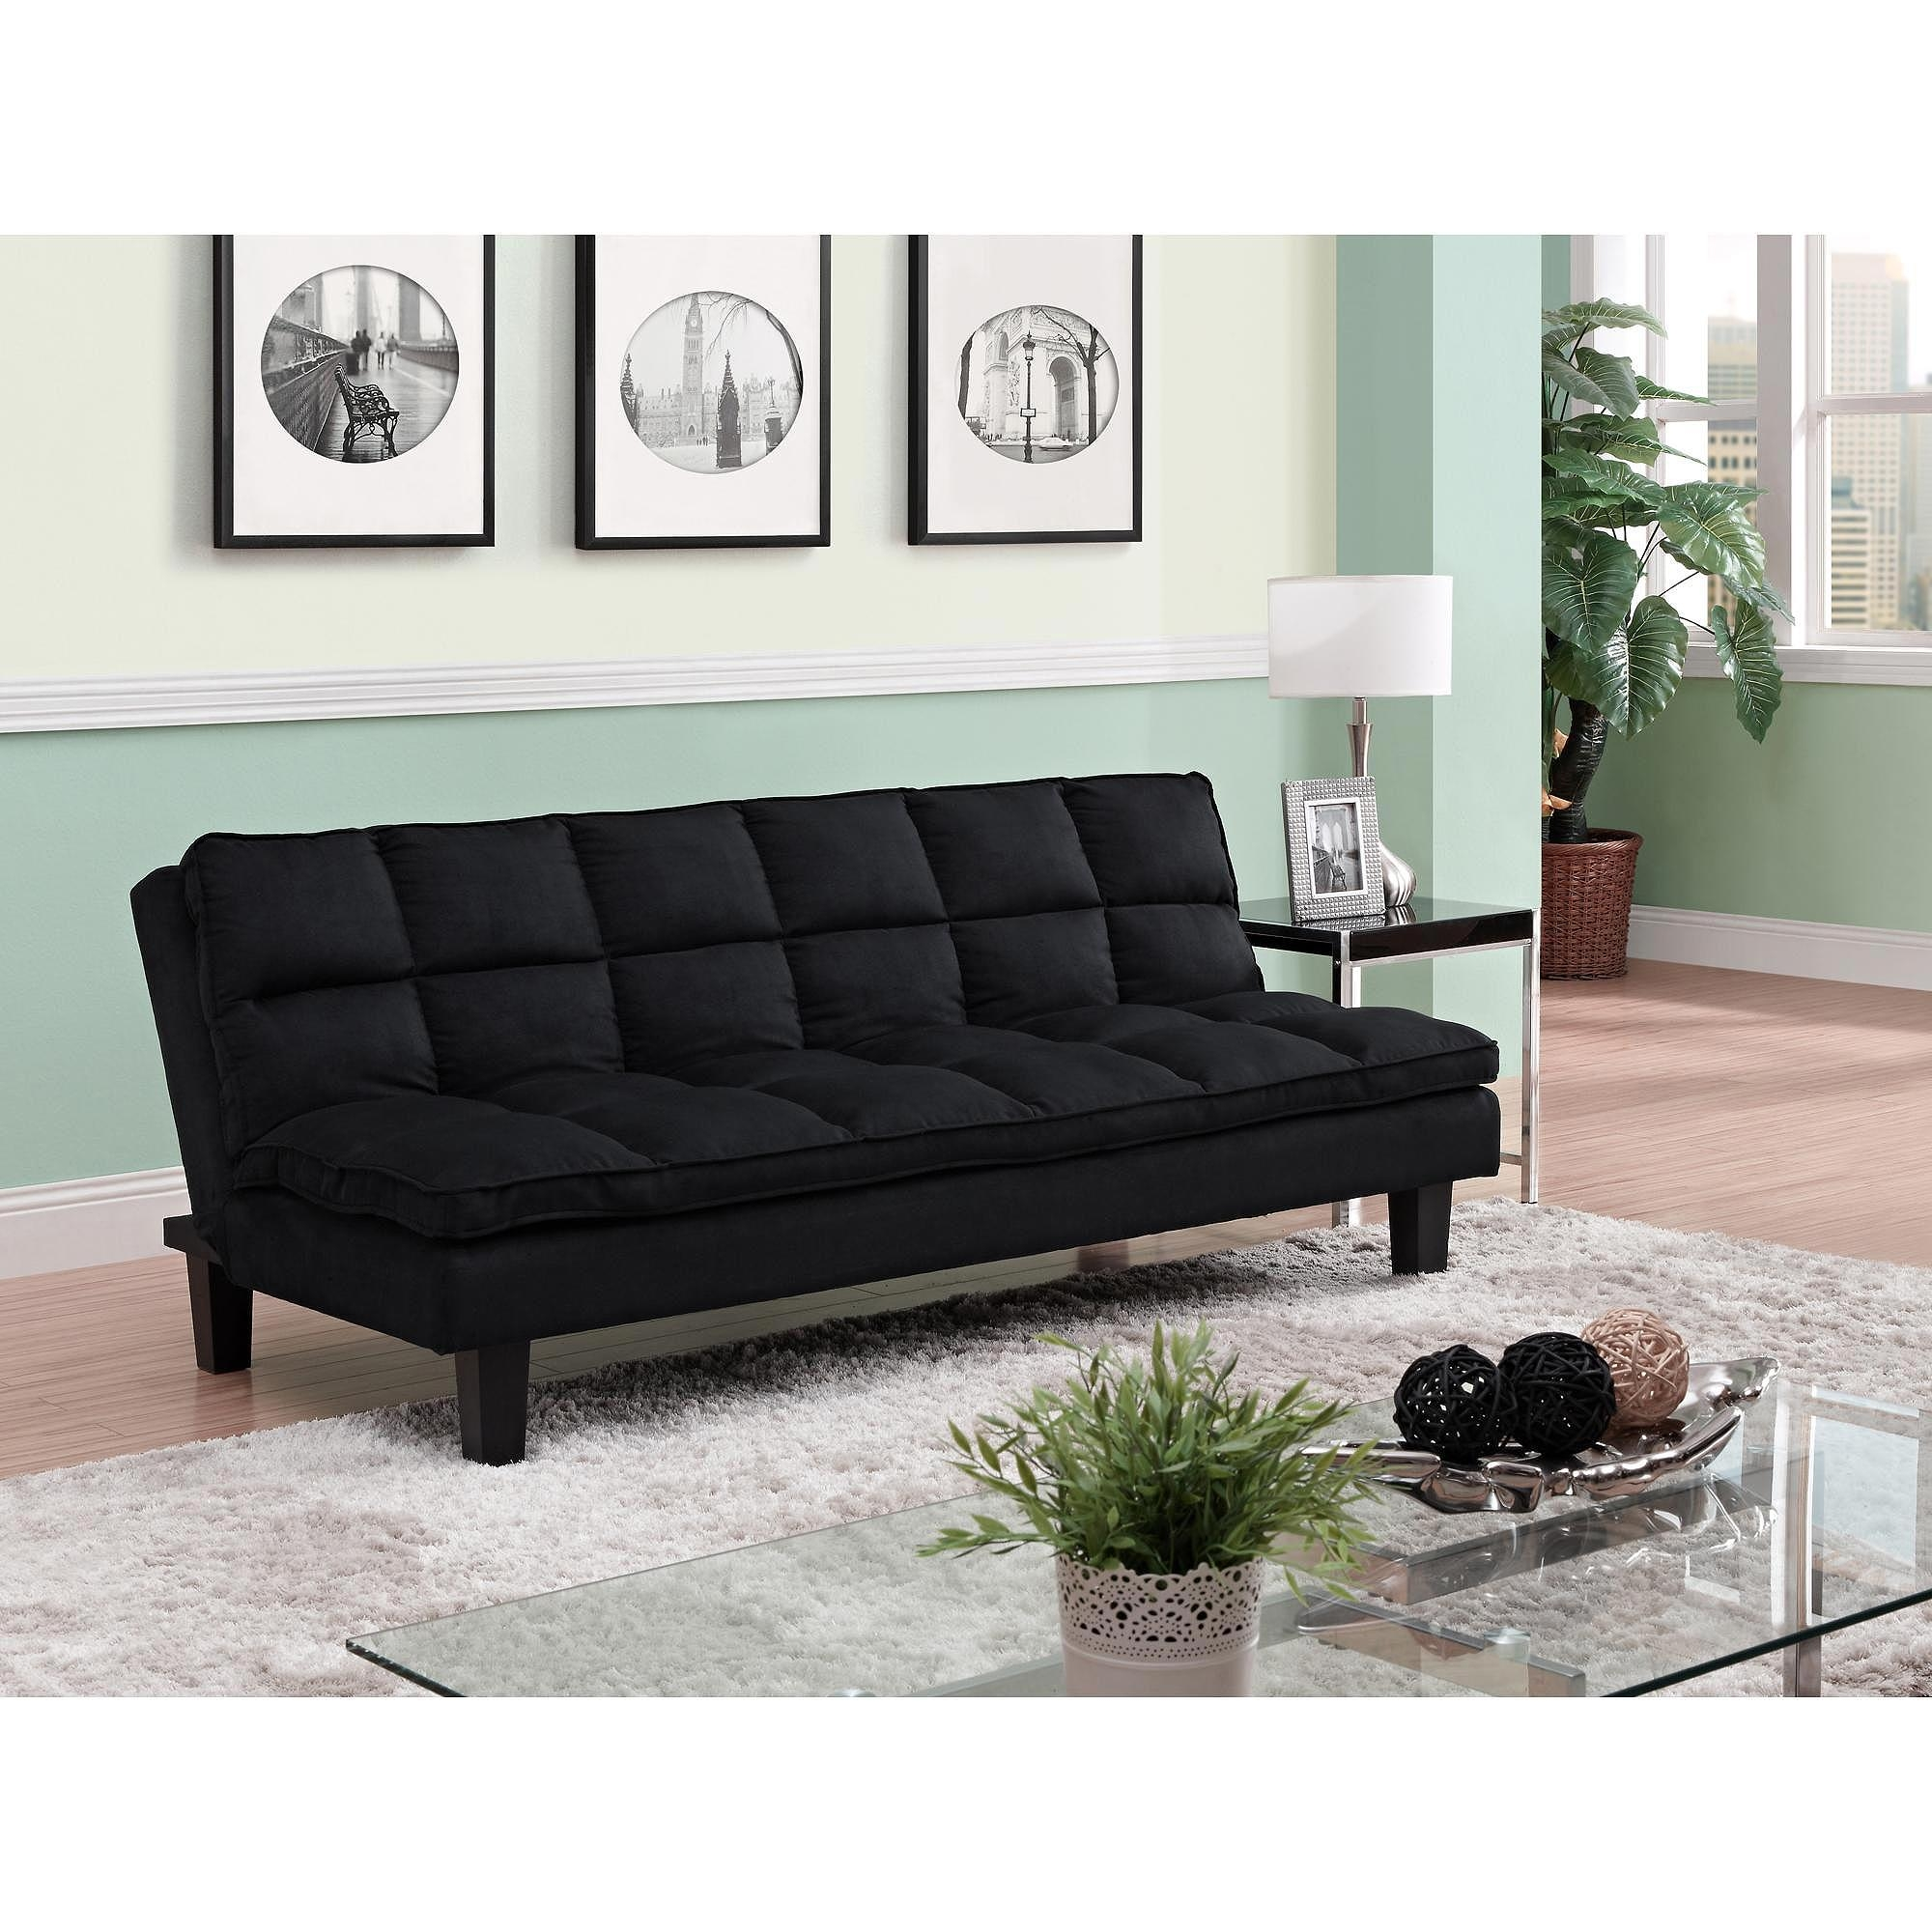 Allegra Pillow Top Futon, Black – Walmart Regarding Small Black Futon Sofa Beds (Image 1 of 20)